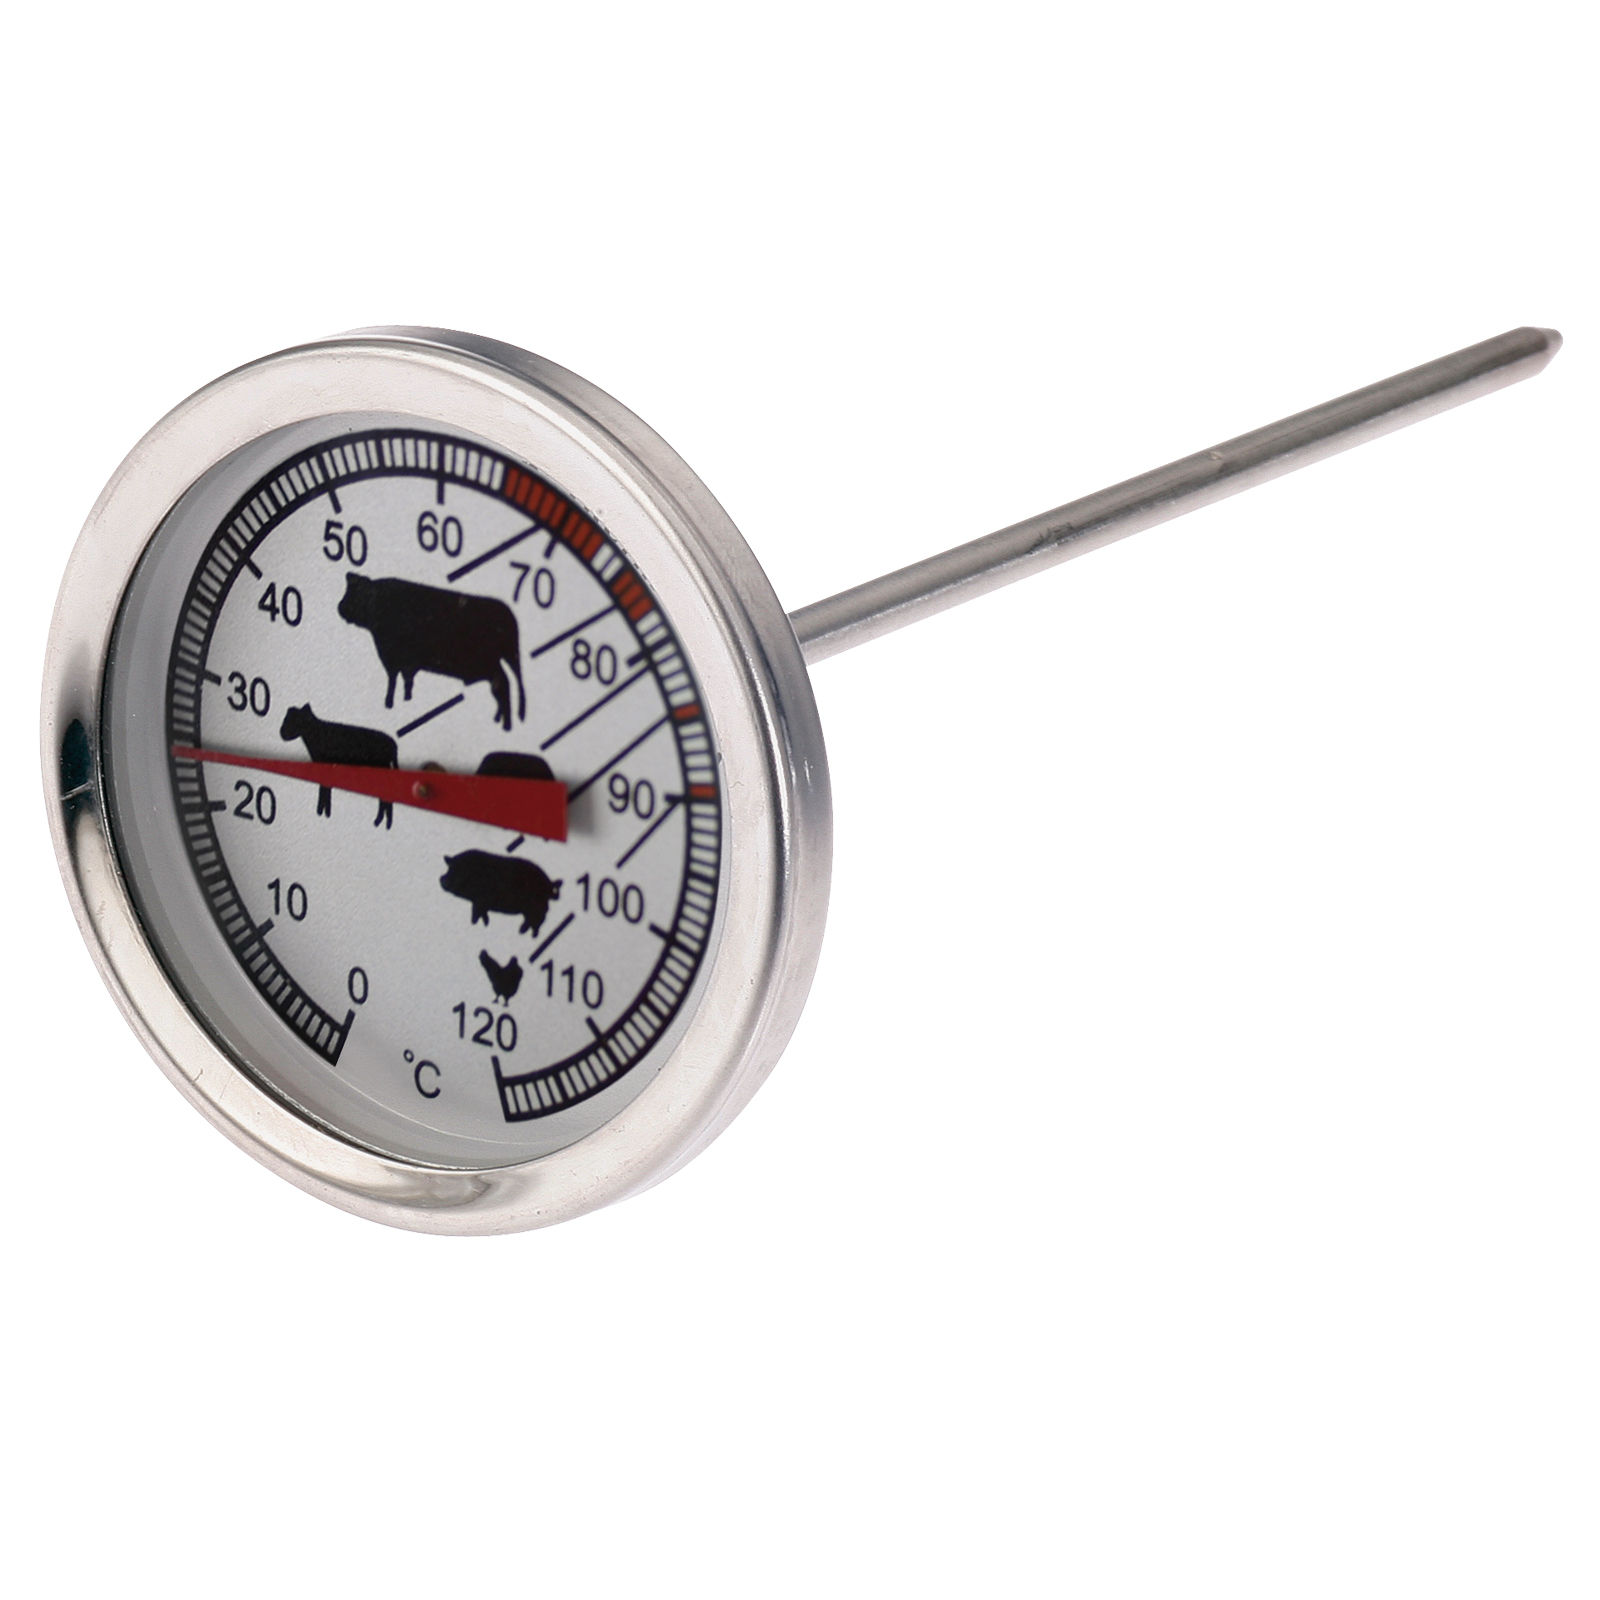 Westmark Bratenthermometer